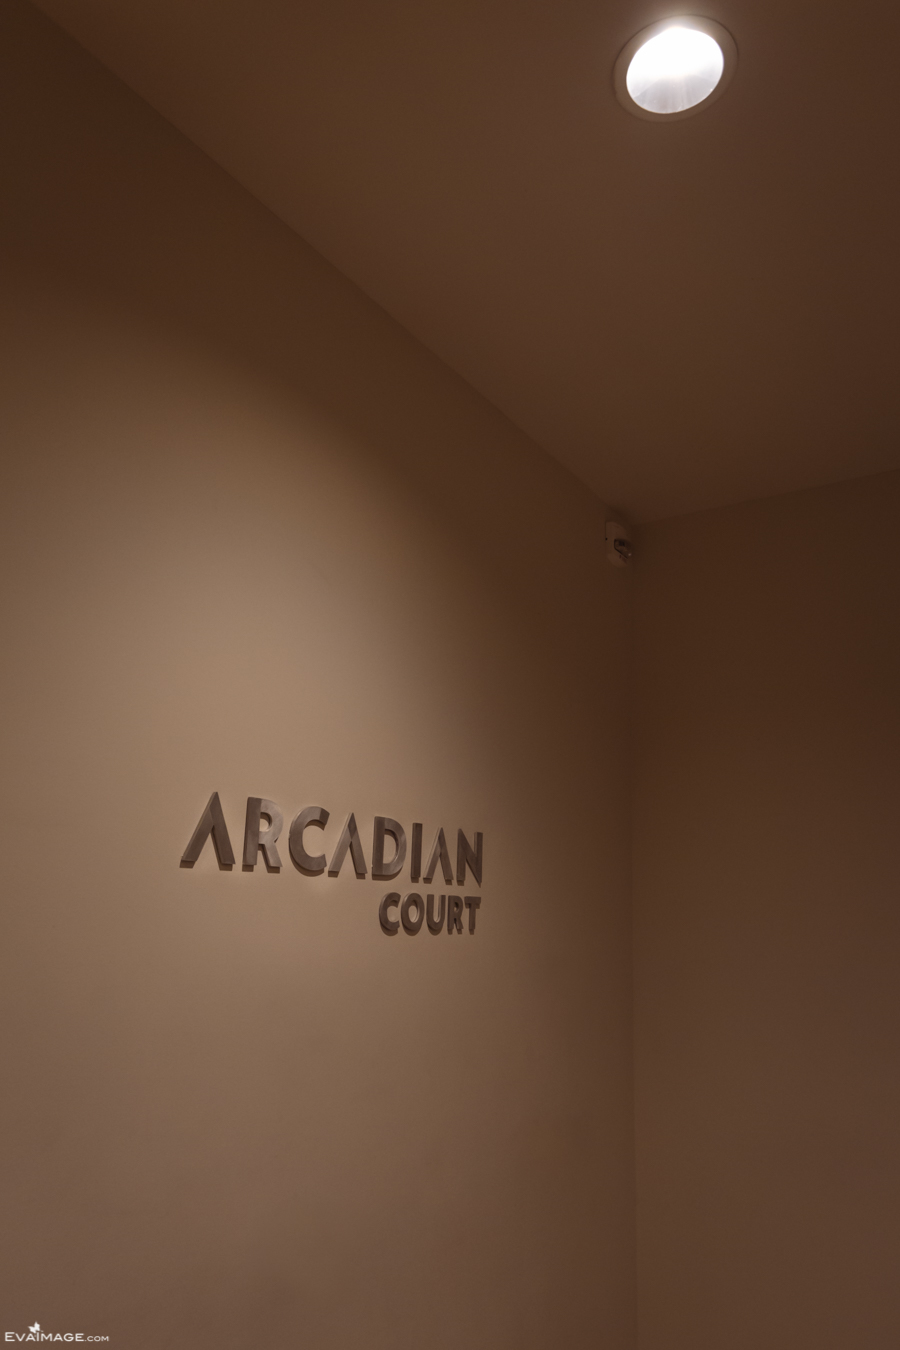 Arcadian Court Ryerson University Commerce Grad Gala 2016